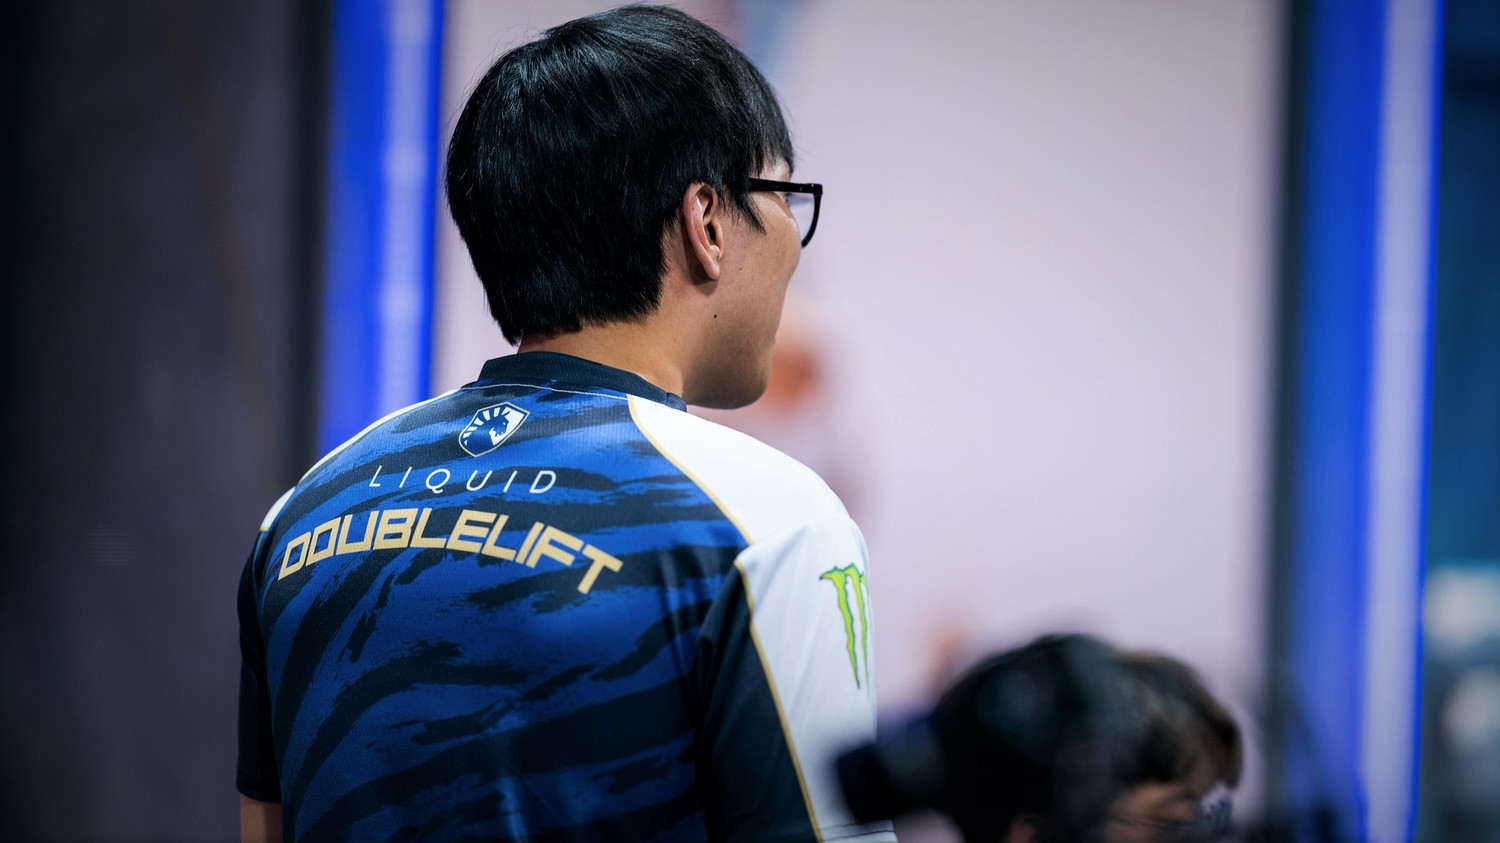 北美戰隊 Team Liquid(TL)的 AD 選手 Doublelift 征戰多年   圖:翻攝LoL Esports Photo Flickr